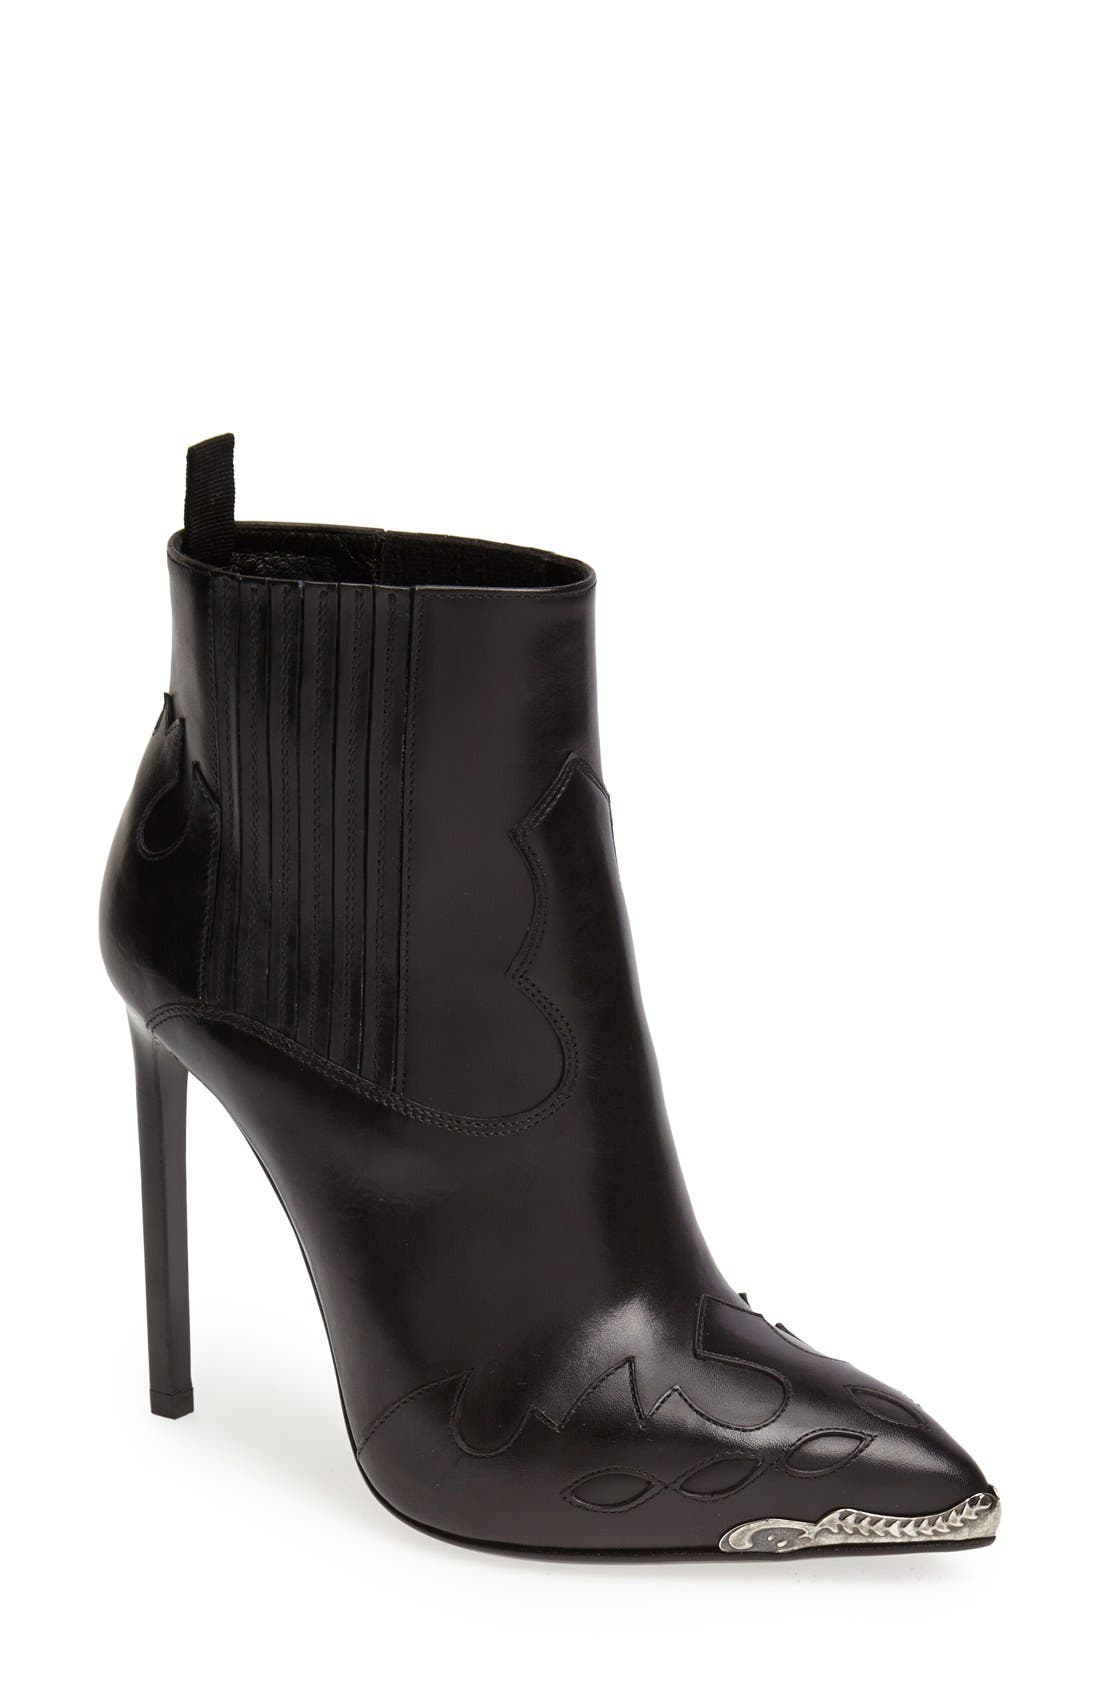 Alternate Image 1 Selected - Saint Laurent Metallic Toe Bootie (Women)